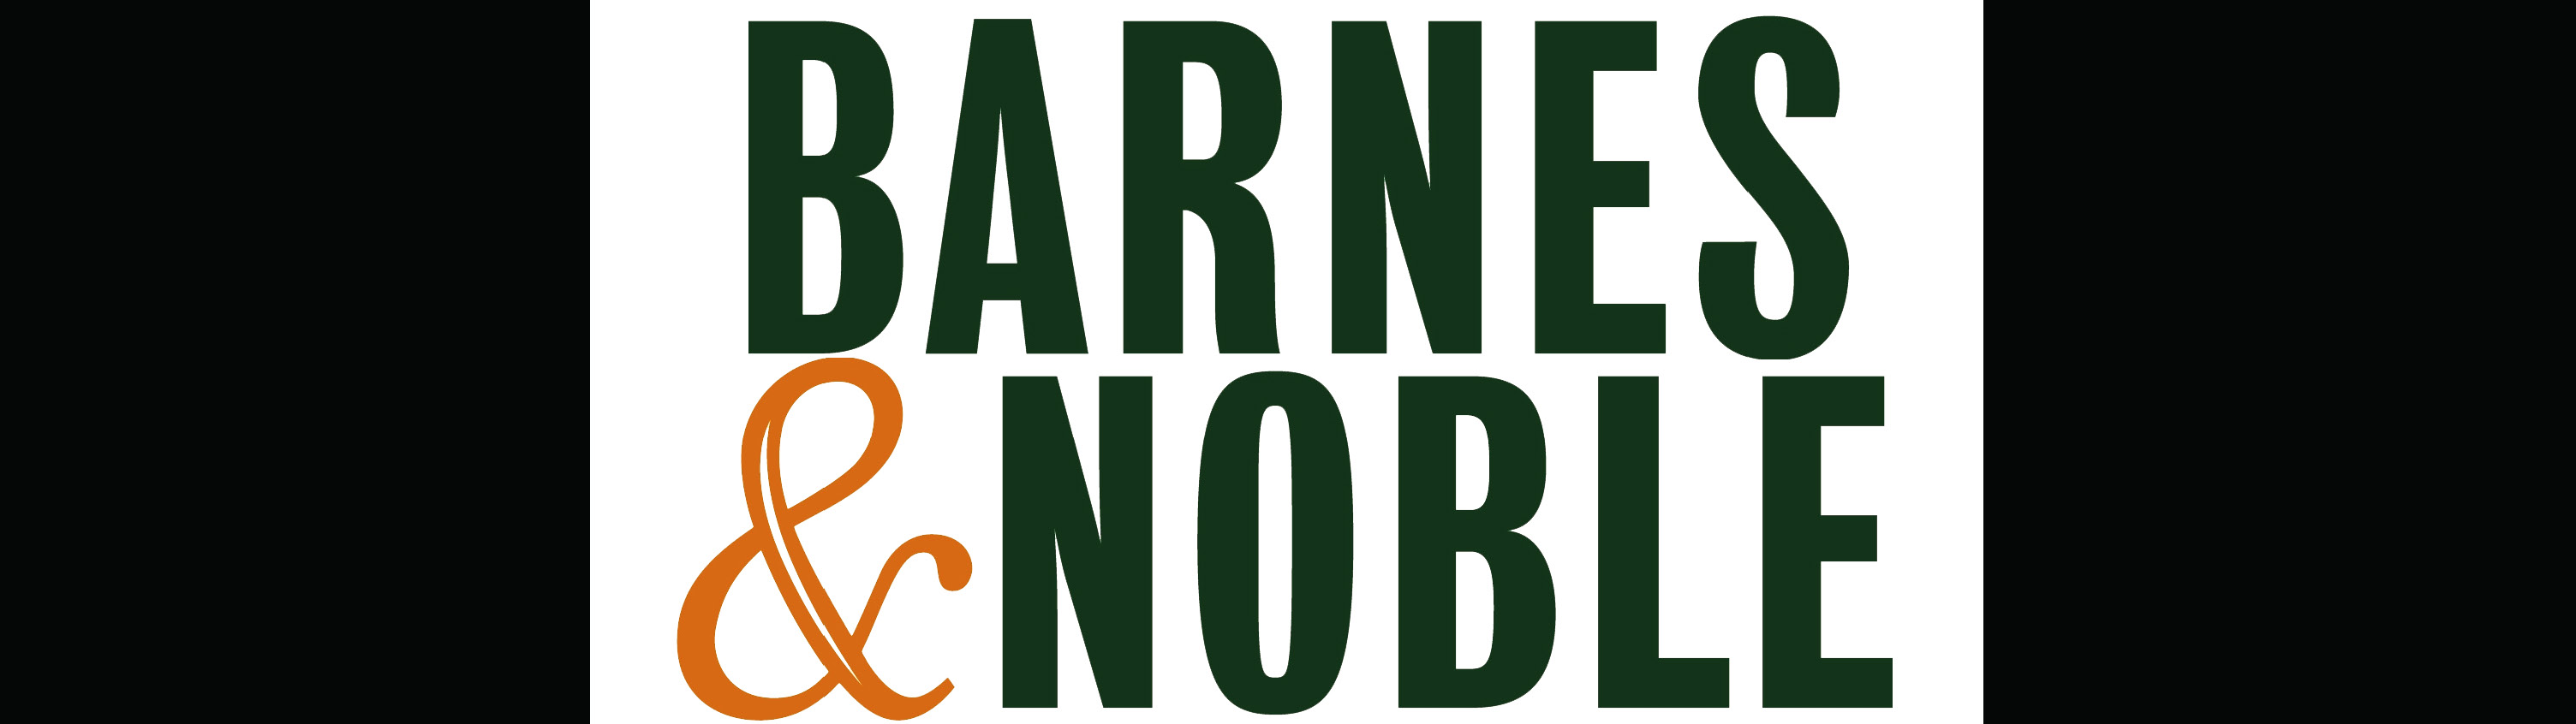 Barnes and noble Logos